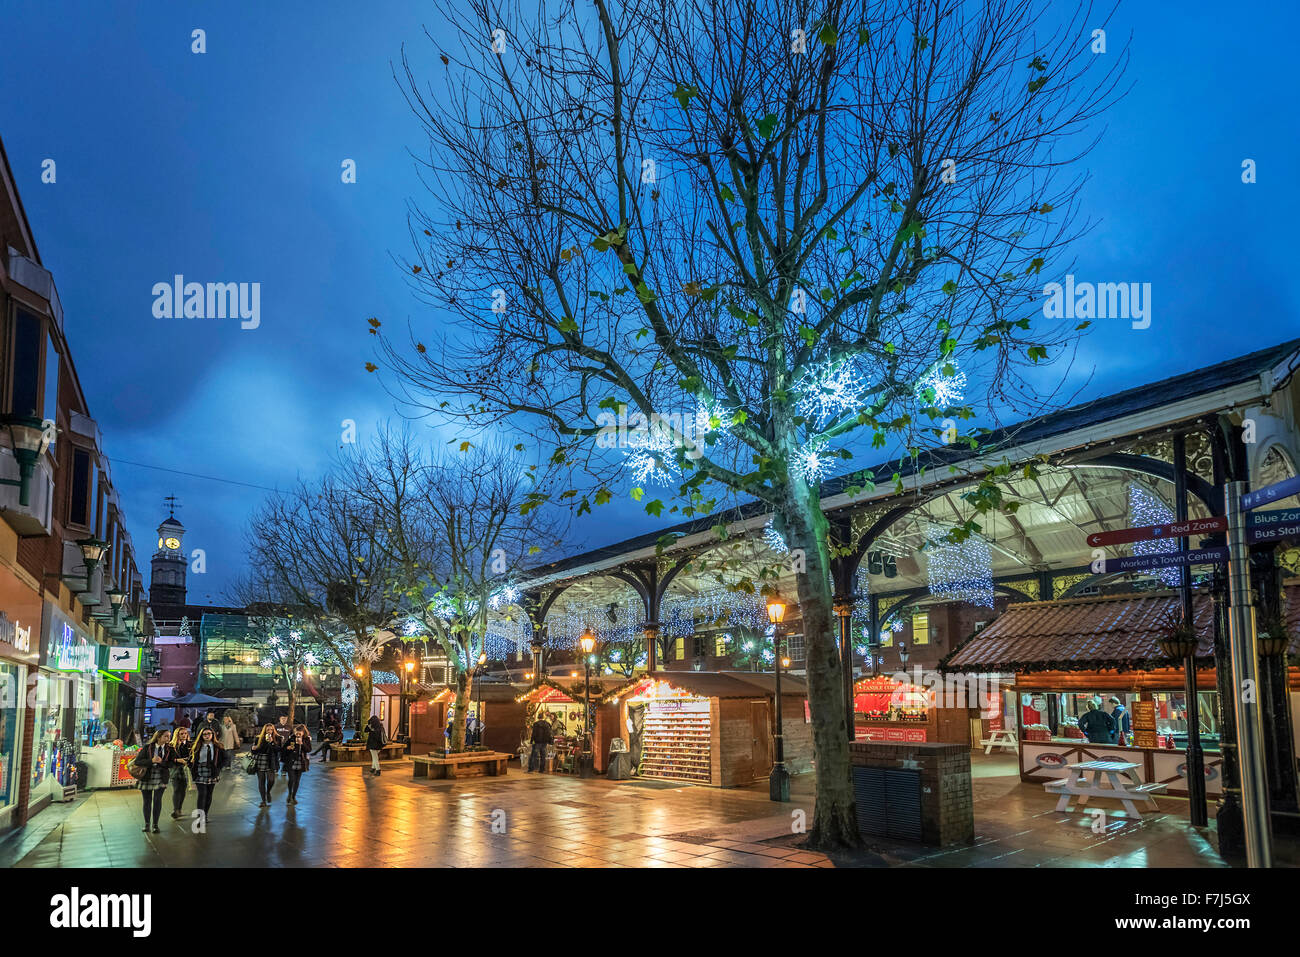 Warrington town centre christmas lights and decorations. Golden Square and the old fishmarket. - Stock Image